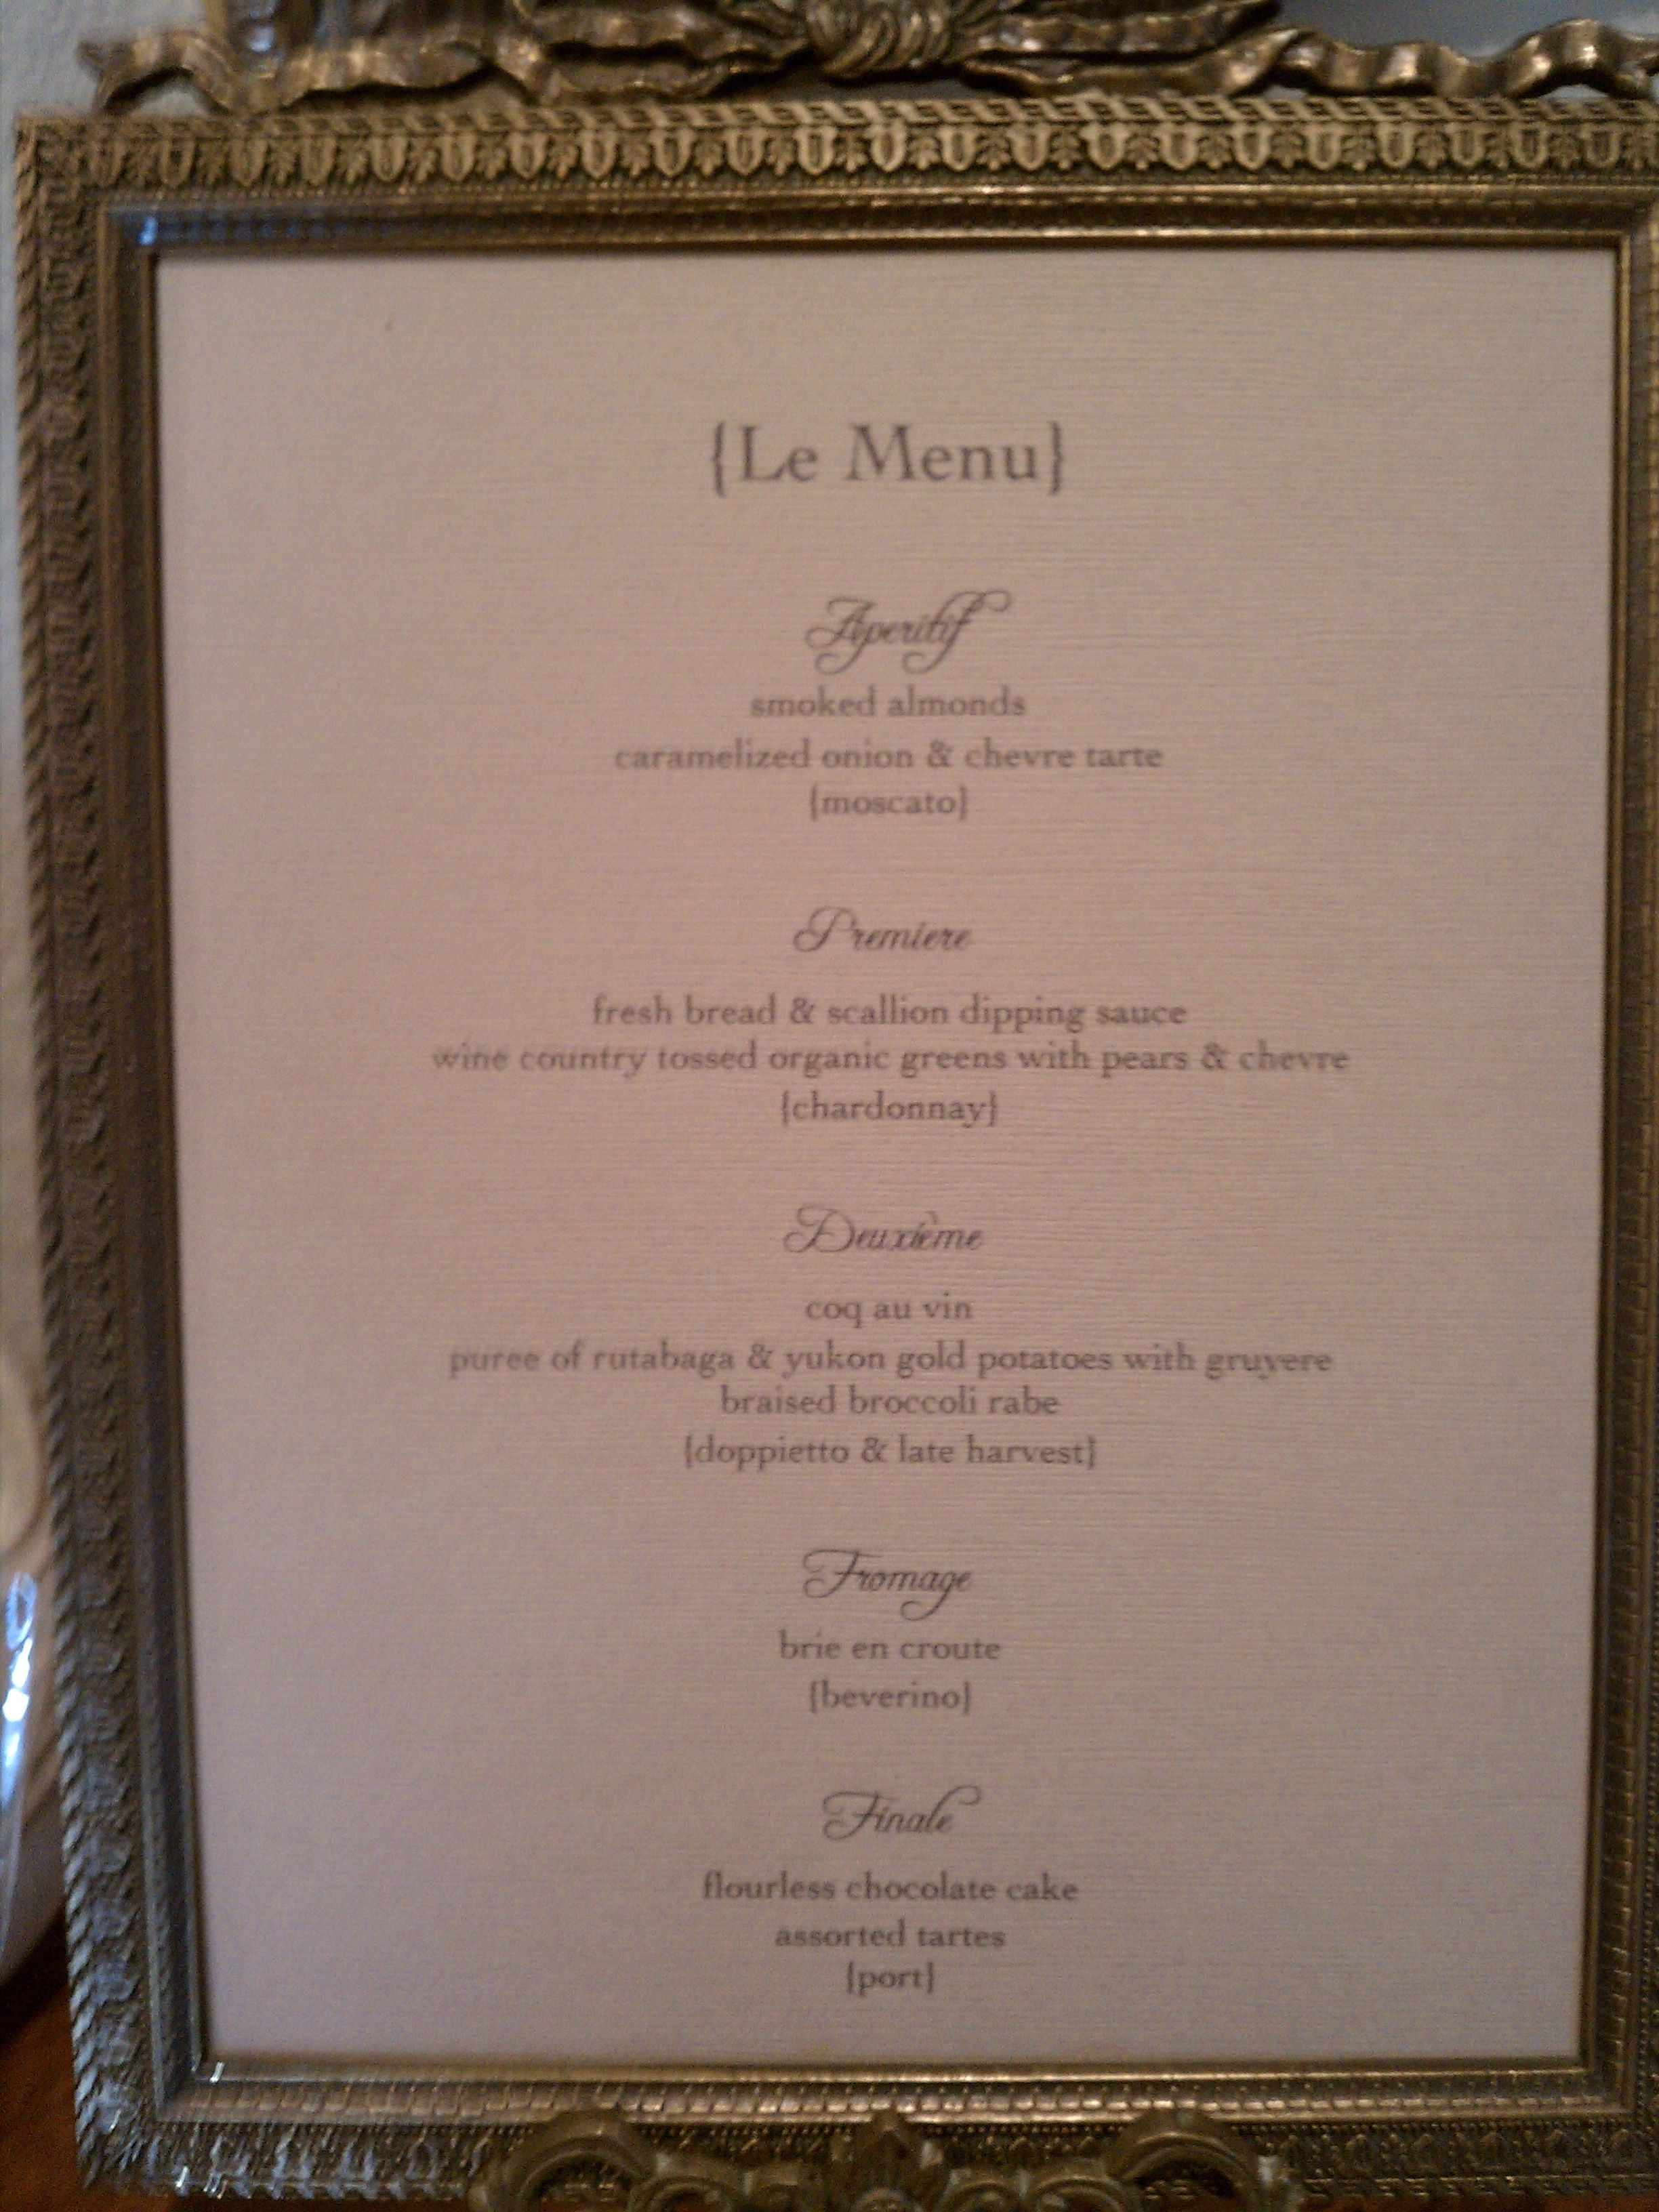 I Printed Our French Menu Complete With The Wine Pairings And